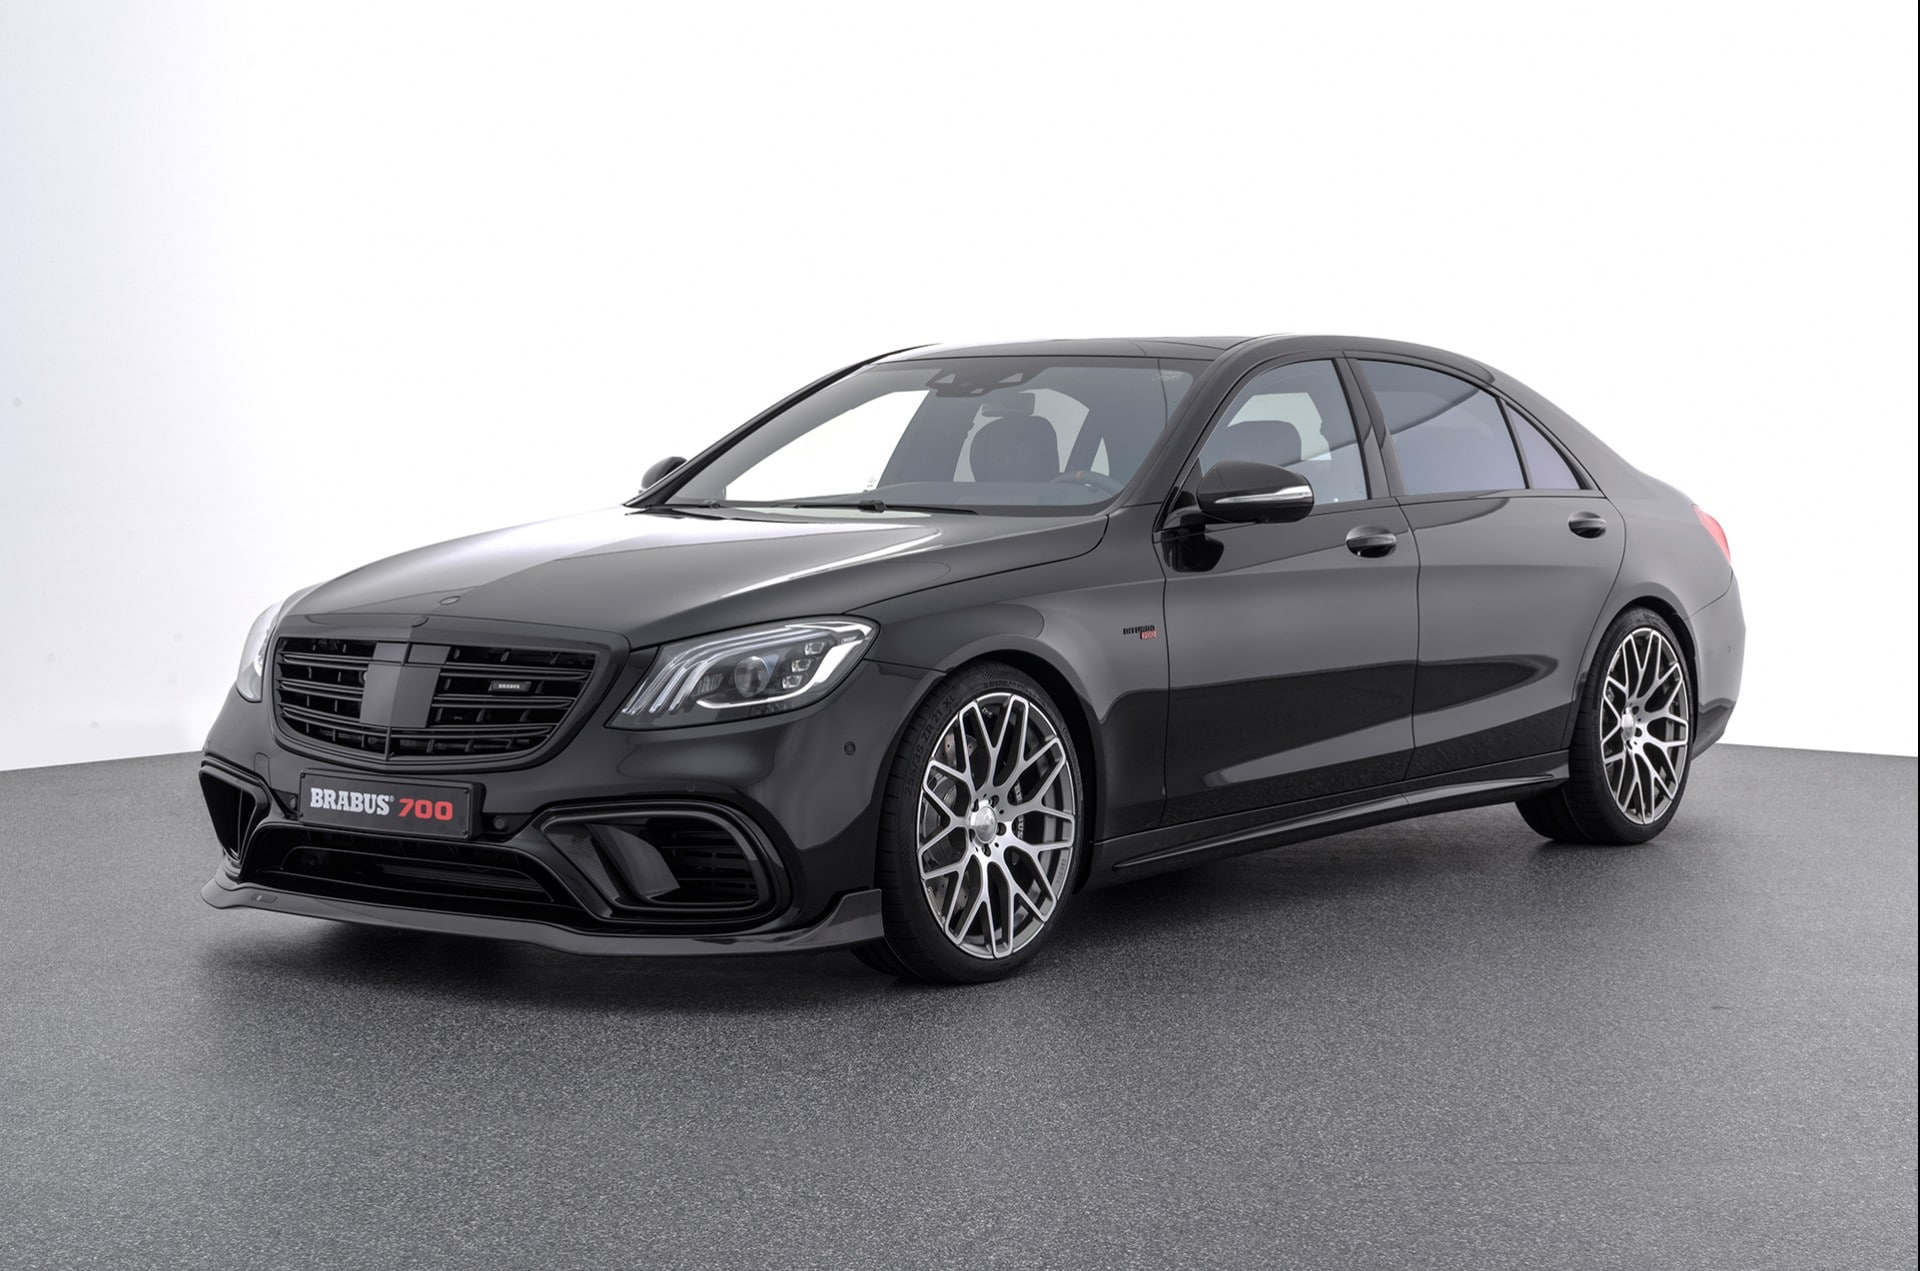 Brabus 700 on S63 4Matic + Saloon